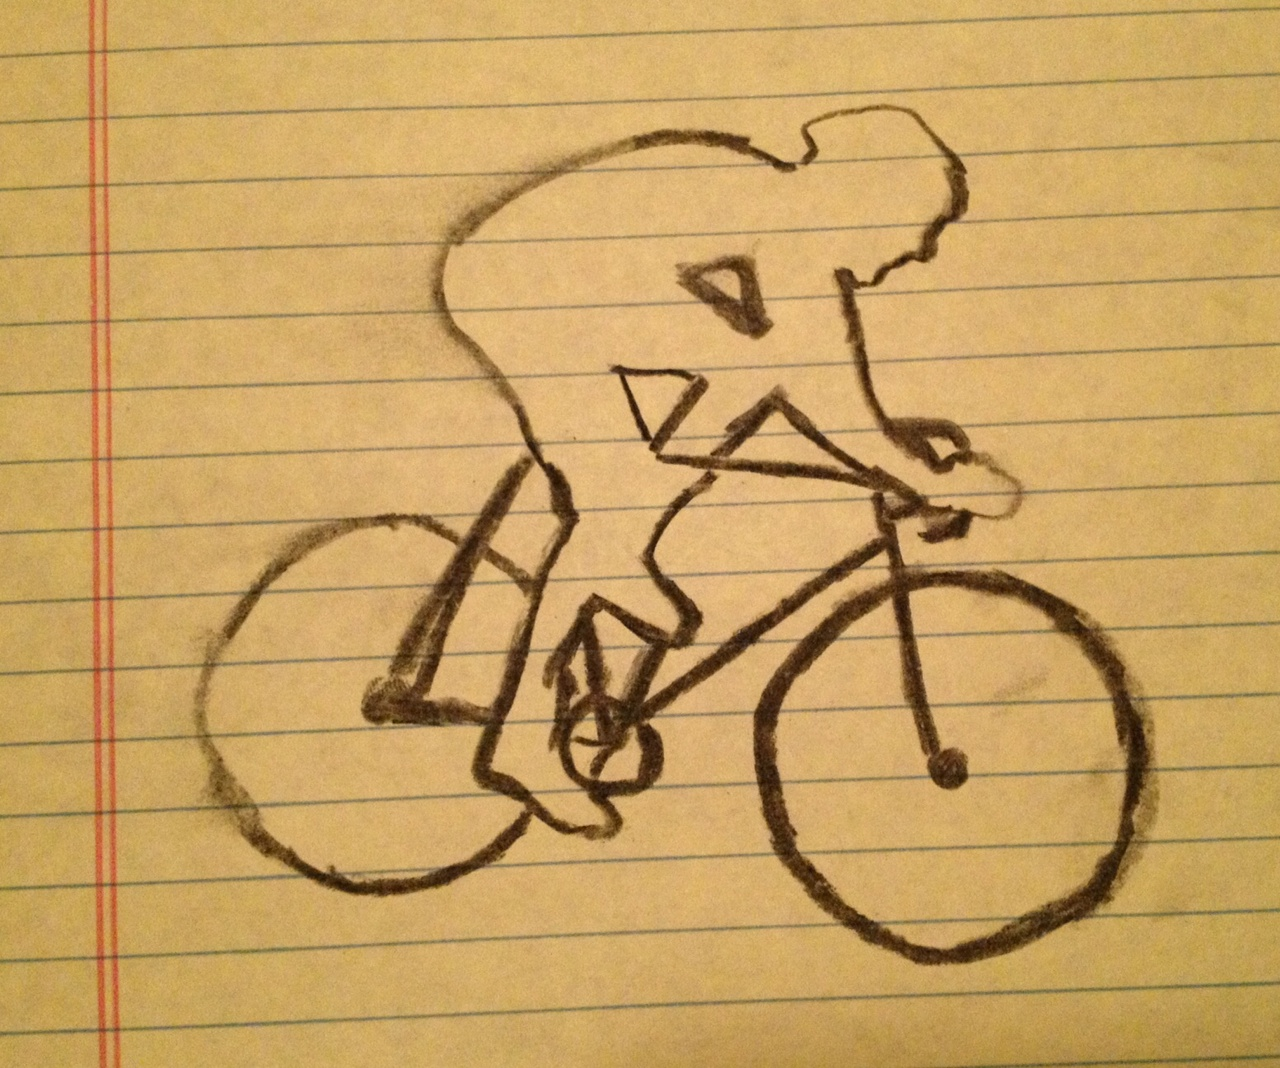 two wheels logo